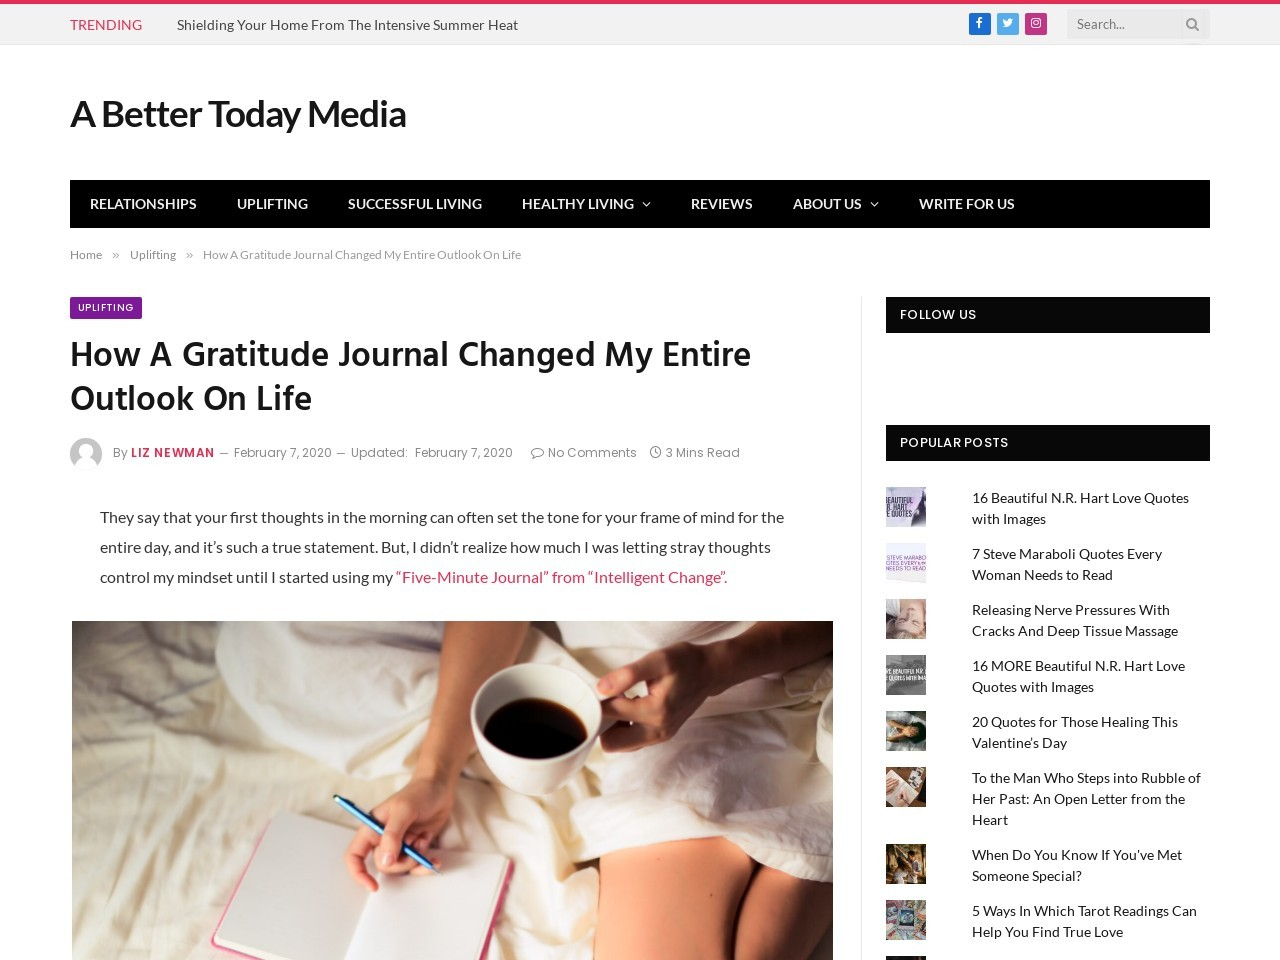 How A Gratitude Journal Changed My Entire Outlook On Life